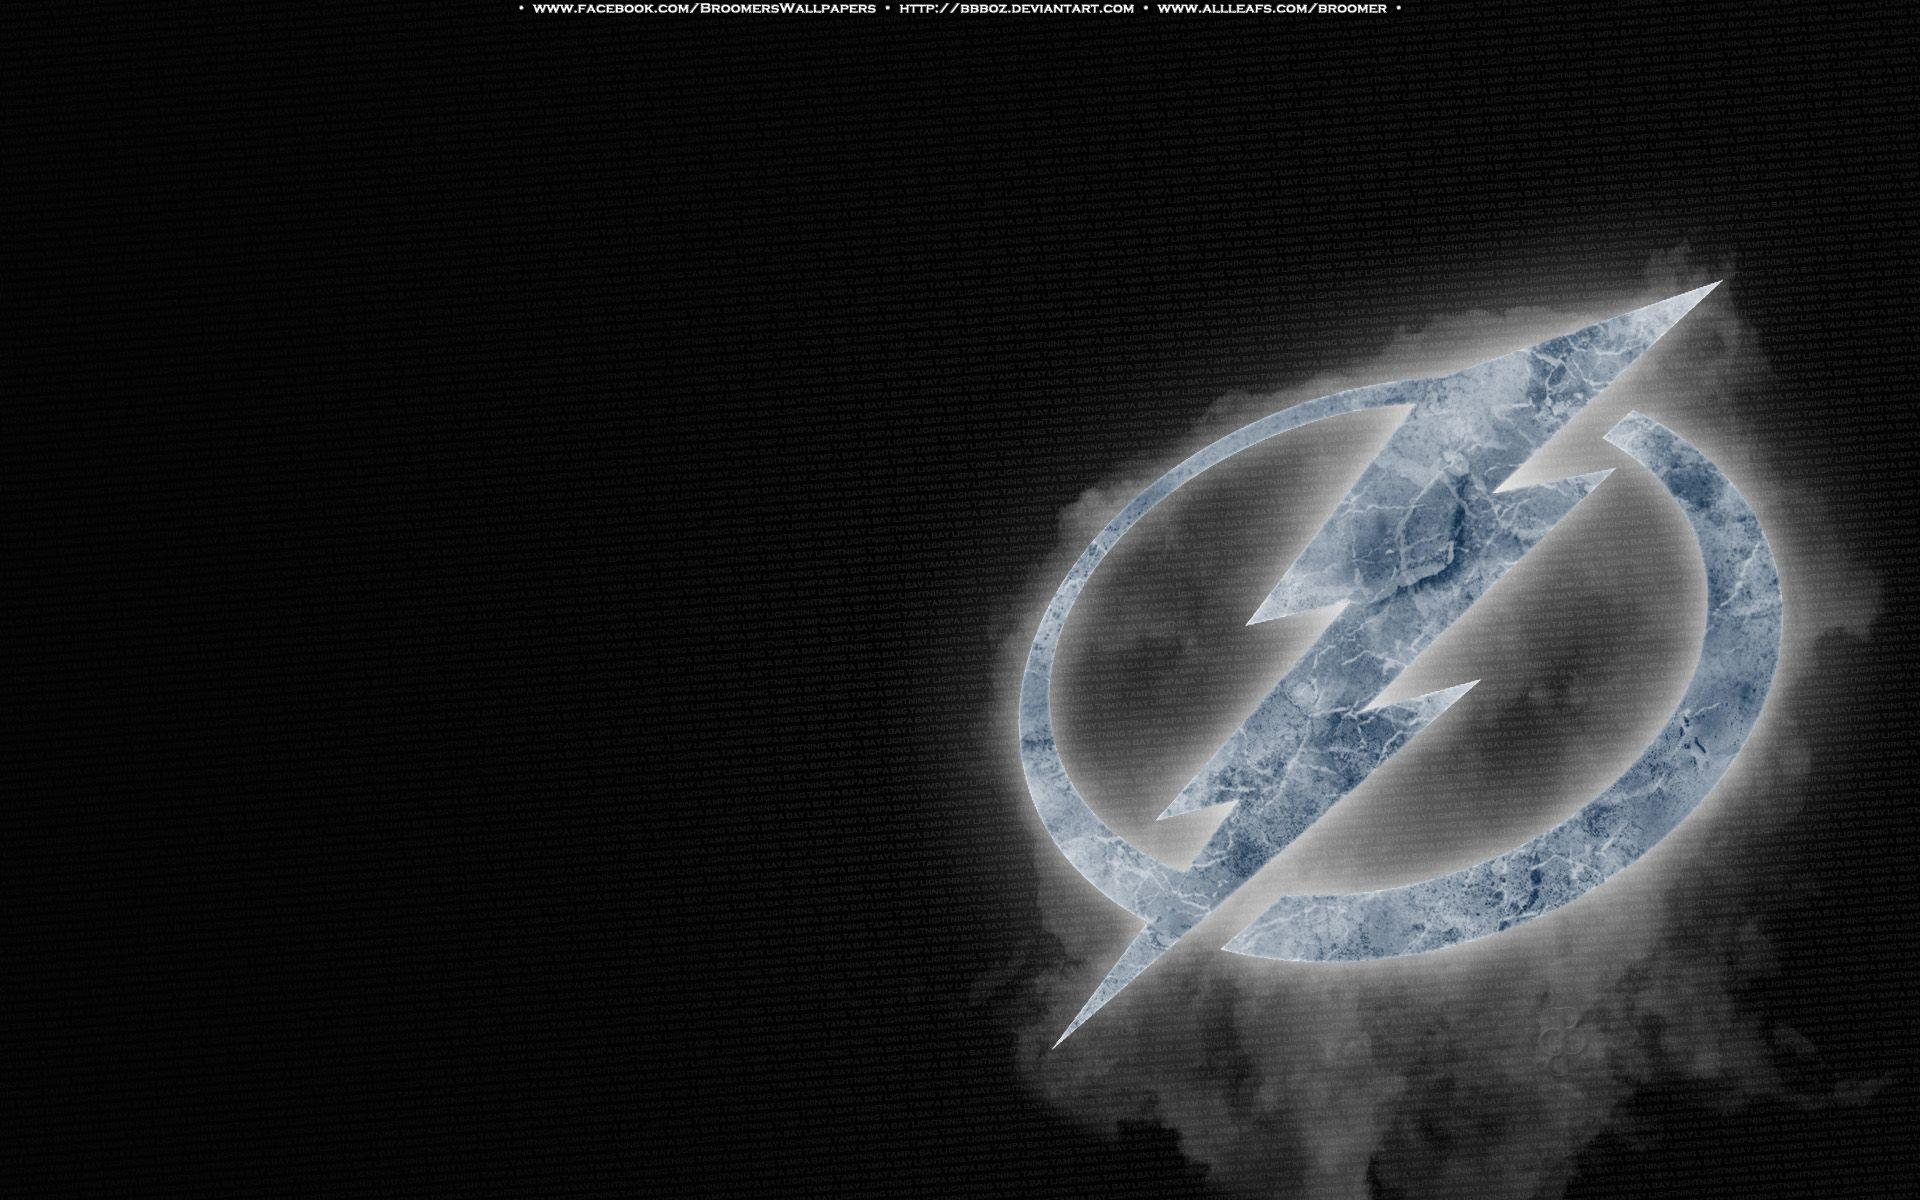 Tampa Bay Lightning Ice by bbboz on DeviantArt